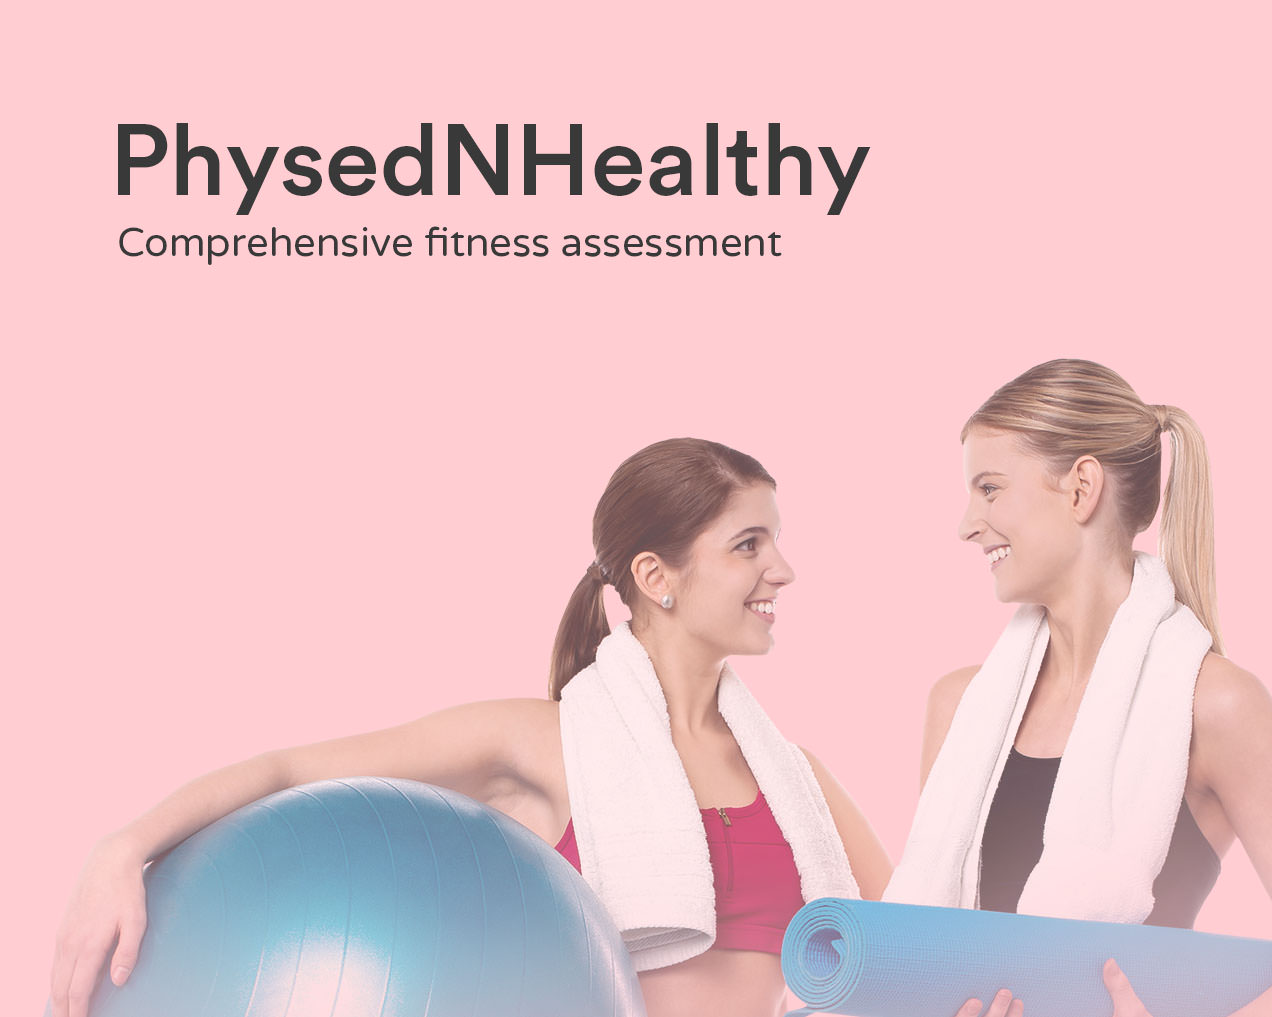 PhysedNHealthy